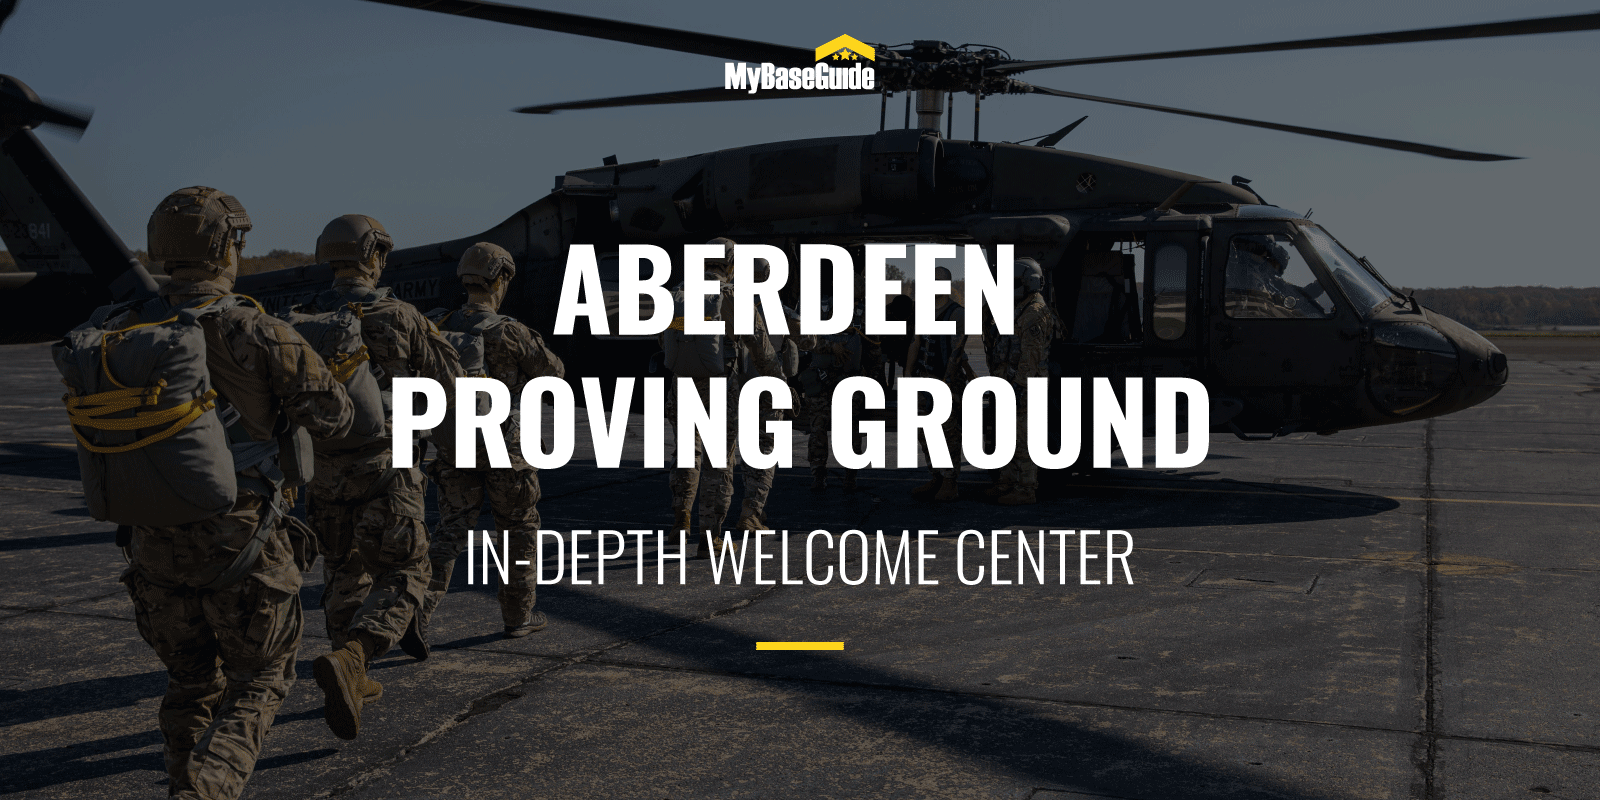 Aberdeen Proving Ground: In-Depth Welcome Center